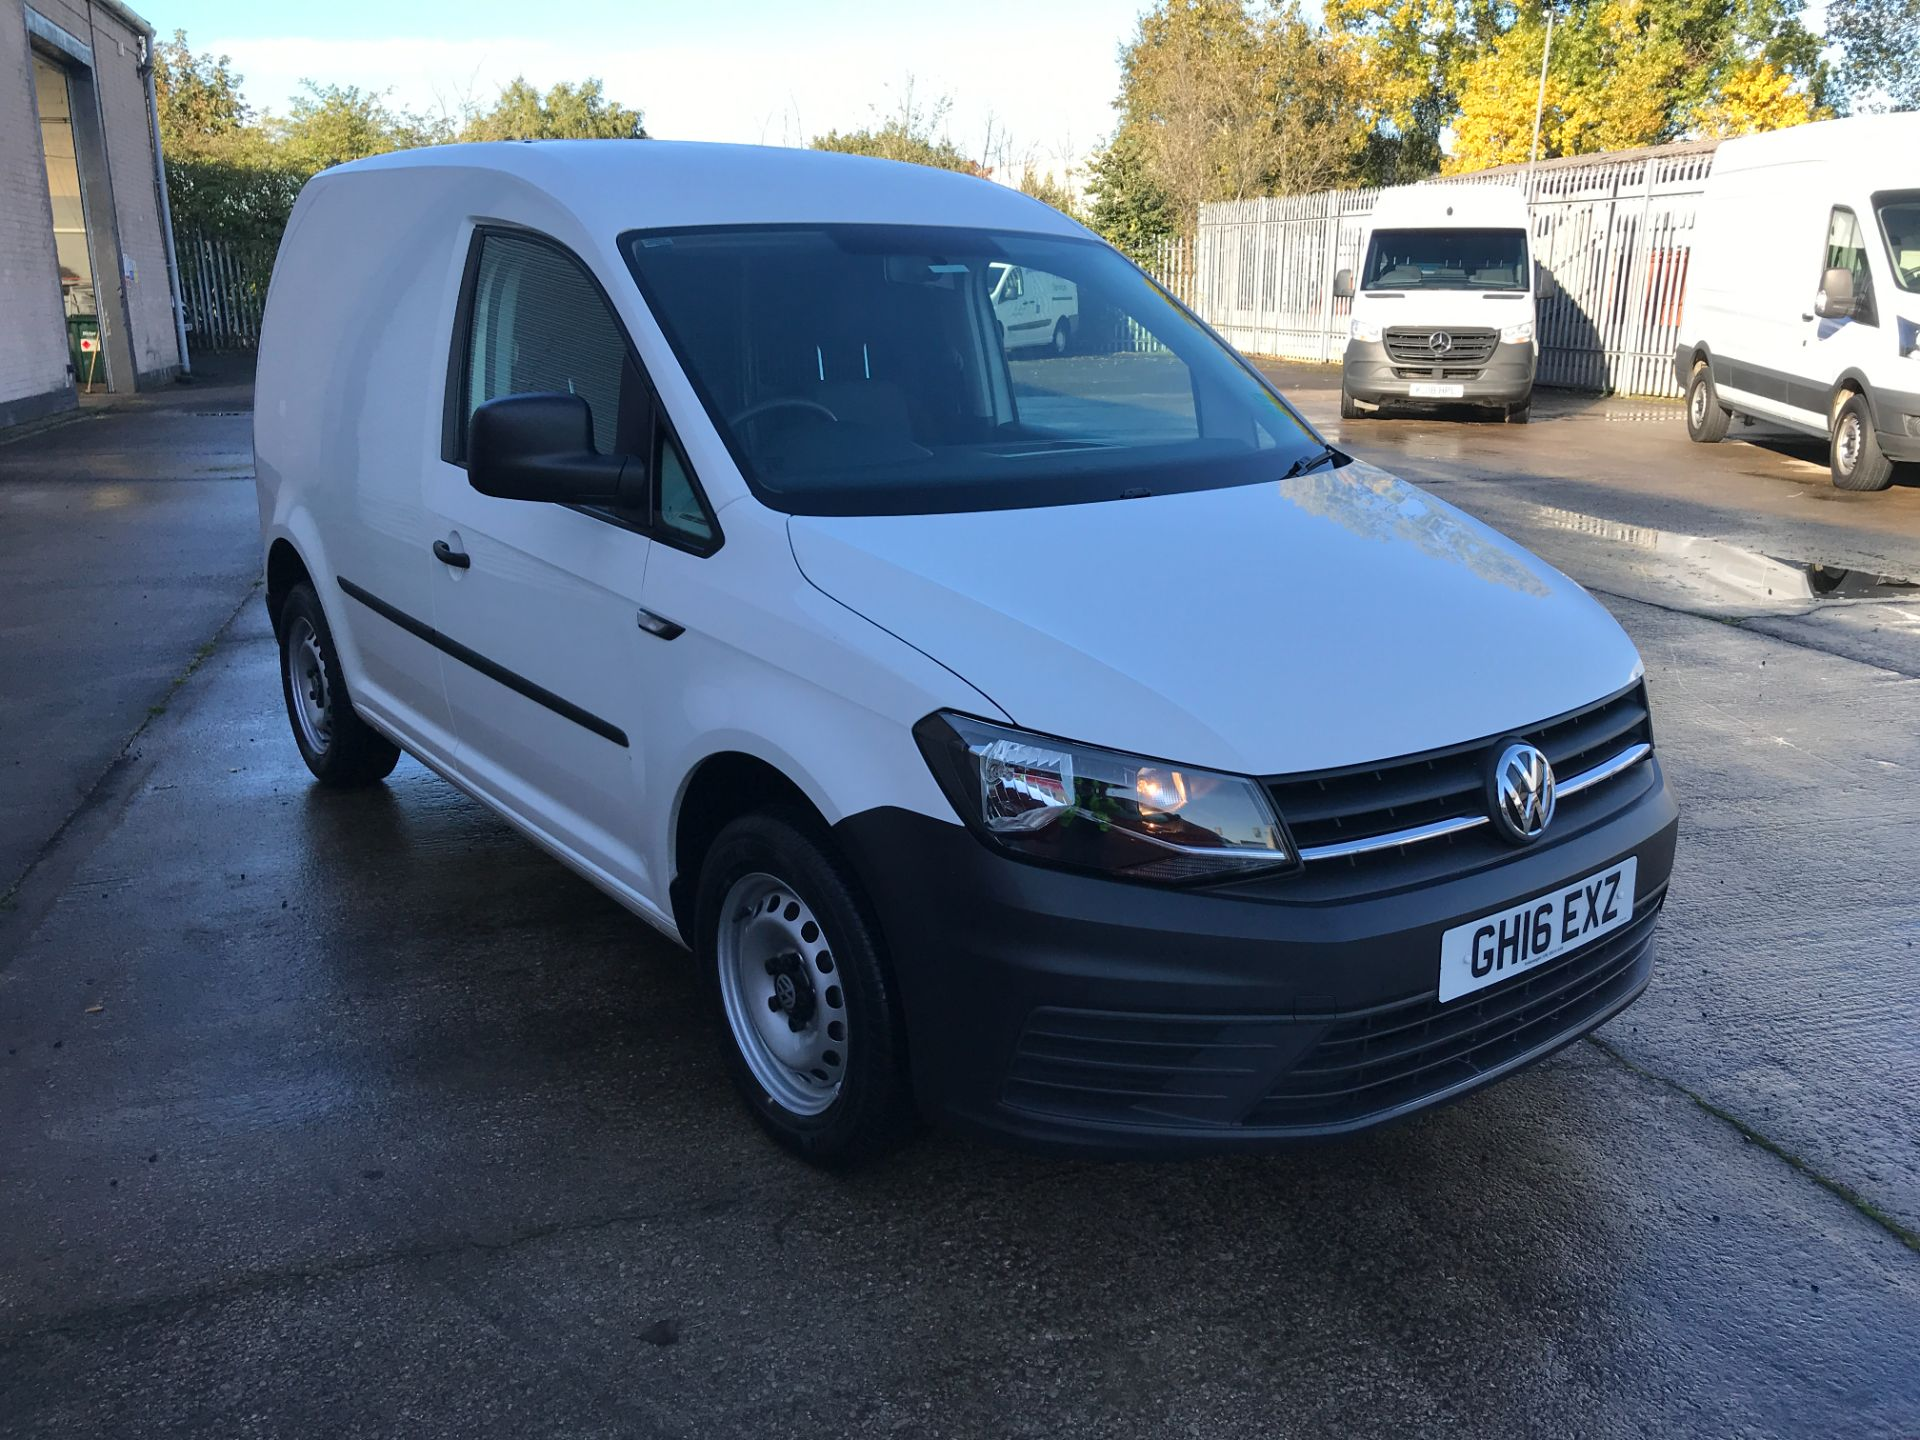 2016 Volkswagen Caddy 2.0TDI BLUEMOTION TECH 102PS STARTLINE EURO 6, NO VAT  (GH16EXZ) Image 1